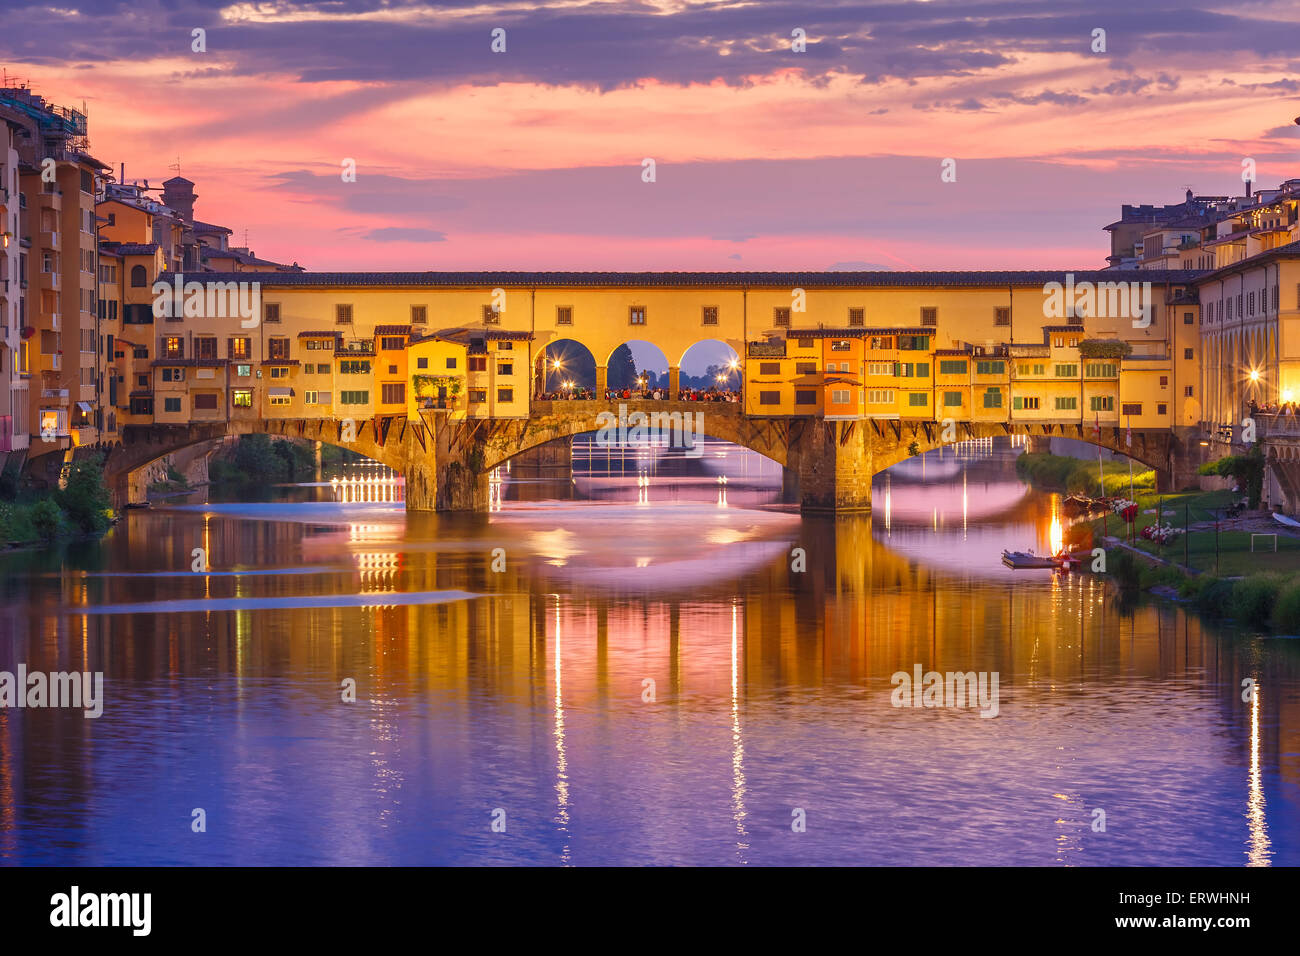 Arno and Ponte Vecchio at sunset, Florence, Italy - Stock Image